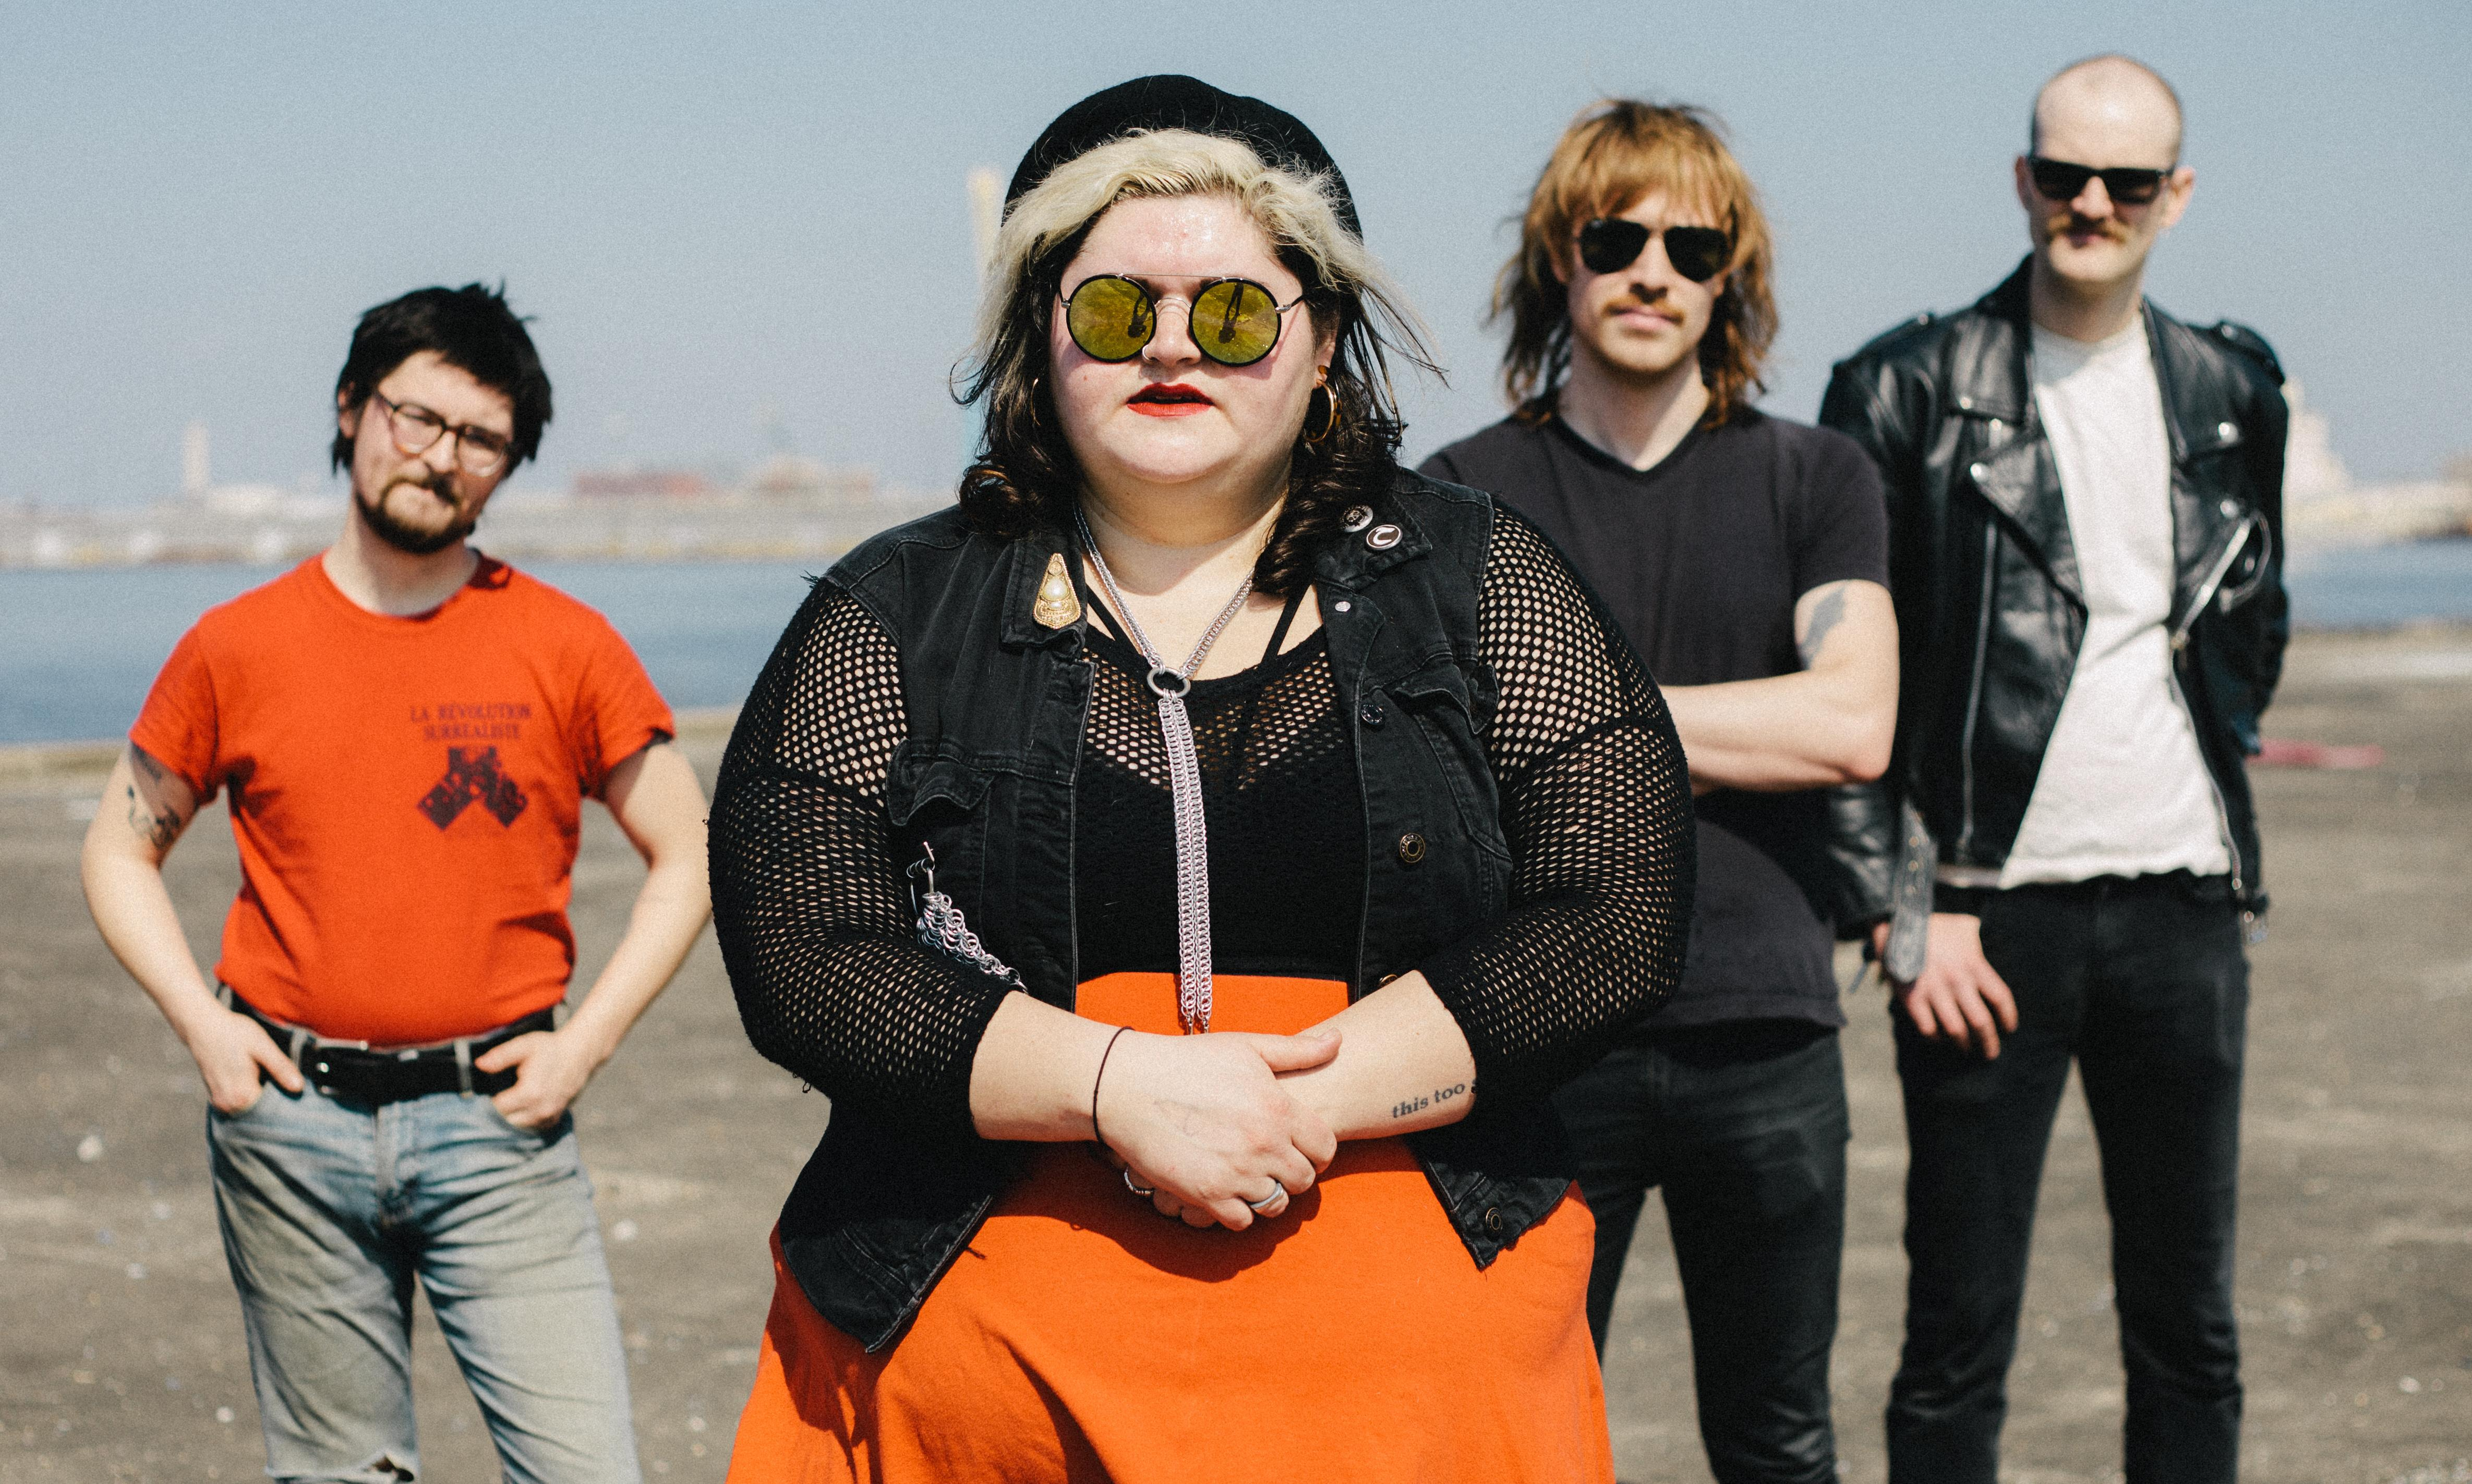 Sheer Mag: A Distant Call review – swagger rockin' on grim reality